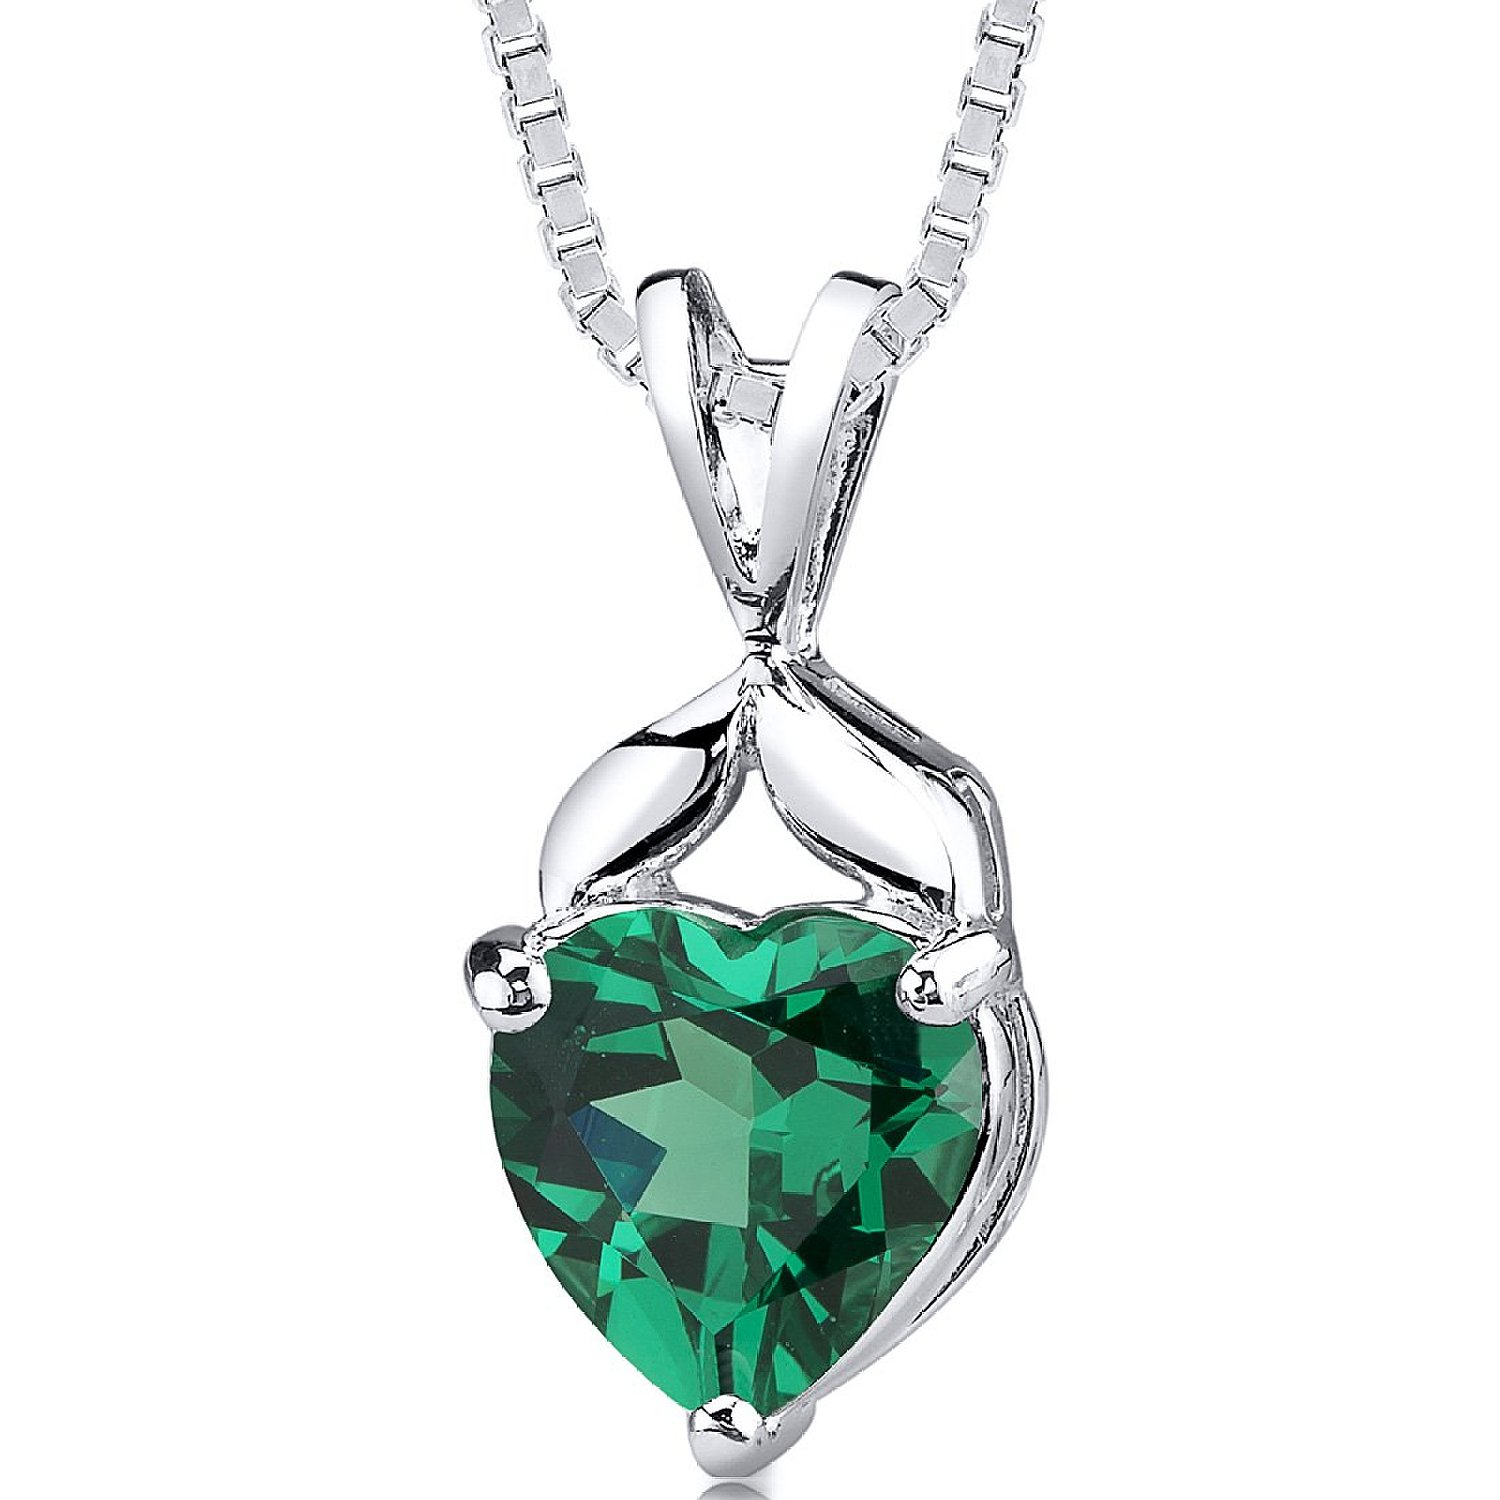 Simulated Emerald Heart Shape Pendant Sterling Silver 3.00 Carats